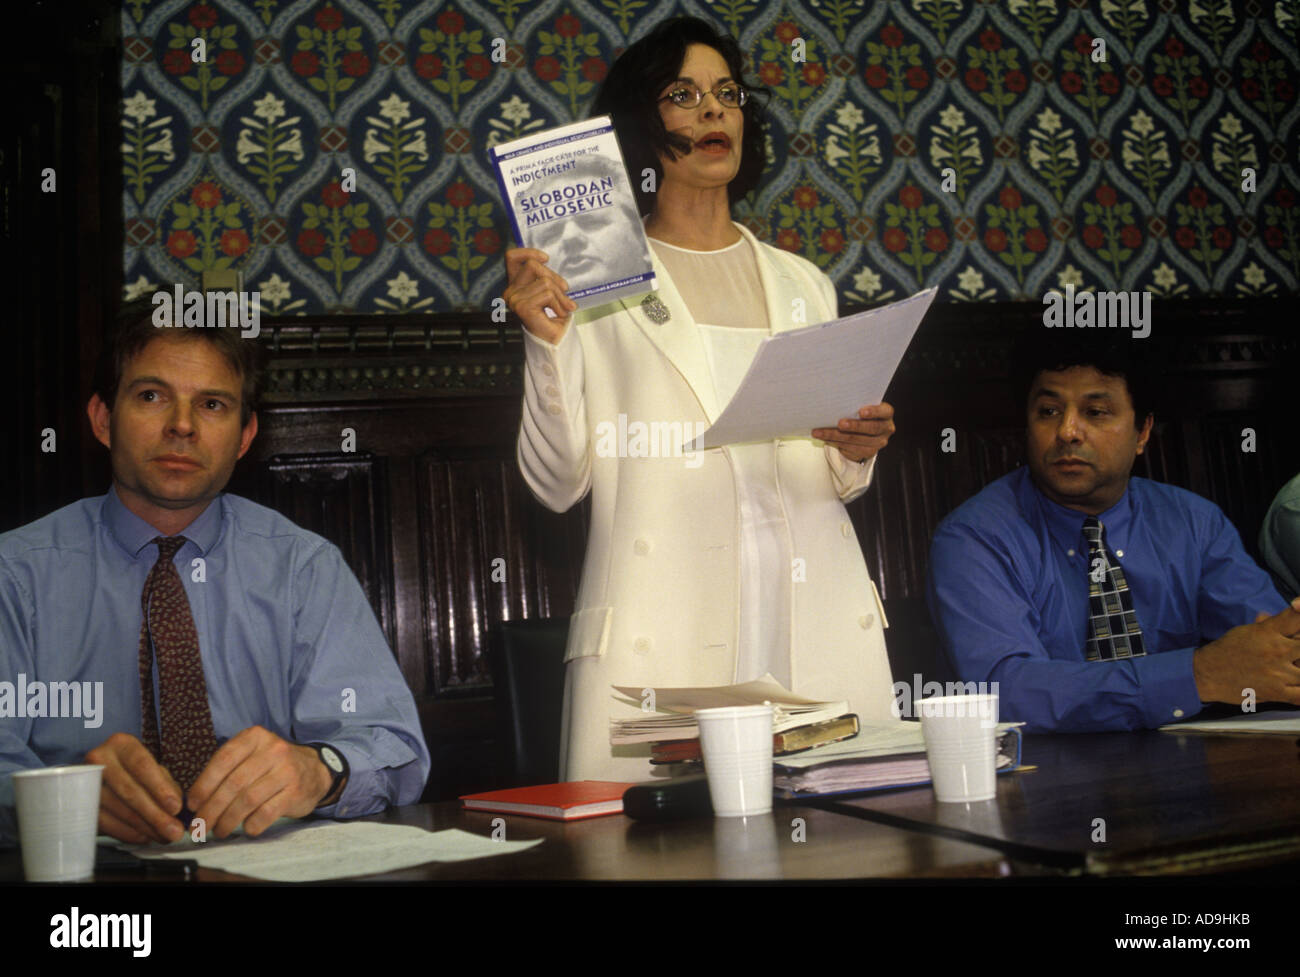 colour portrait of 'Bianca Jagger' human rights activist talk 'House of Common'  circa 1995 - Stock Image